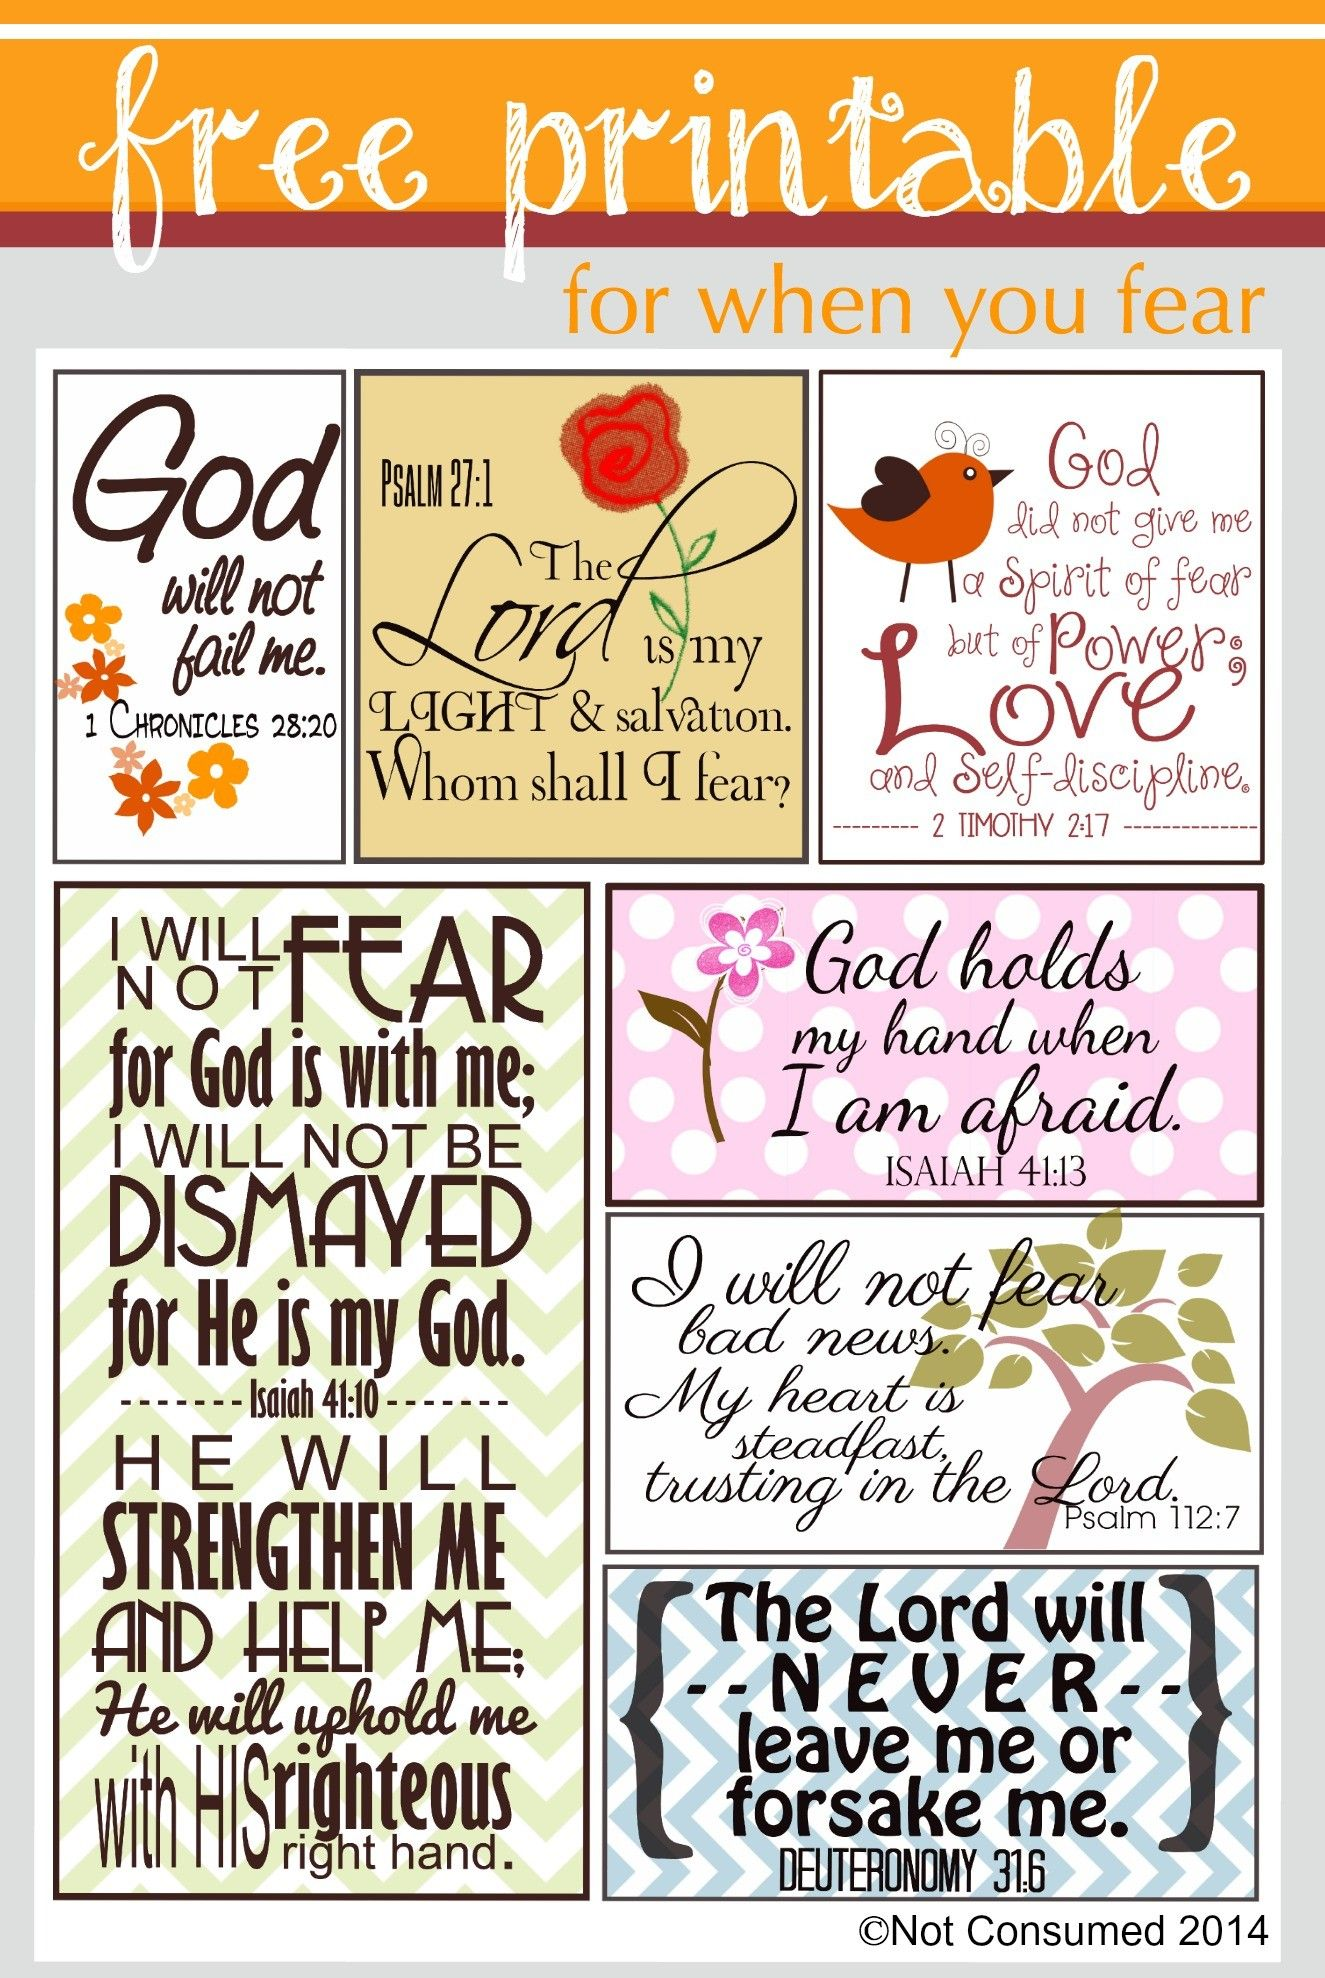 Divine image with regard to free printable scripture verses